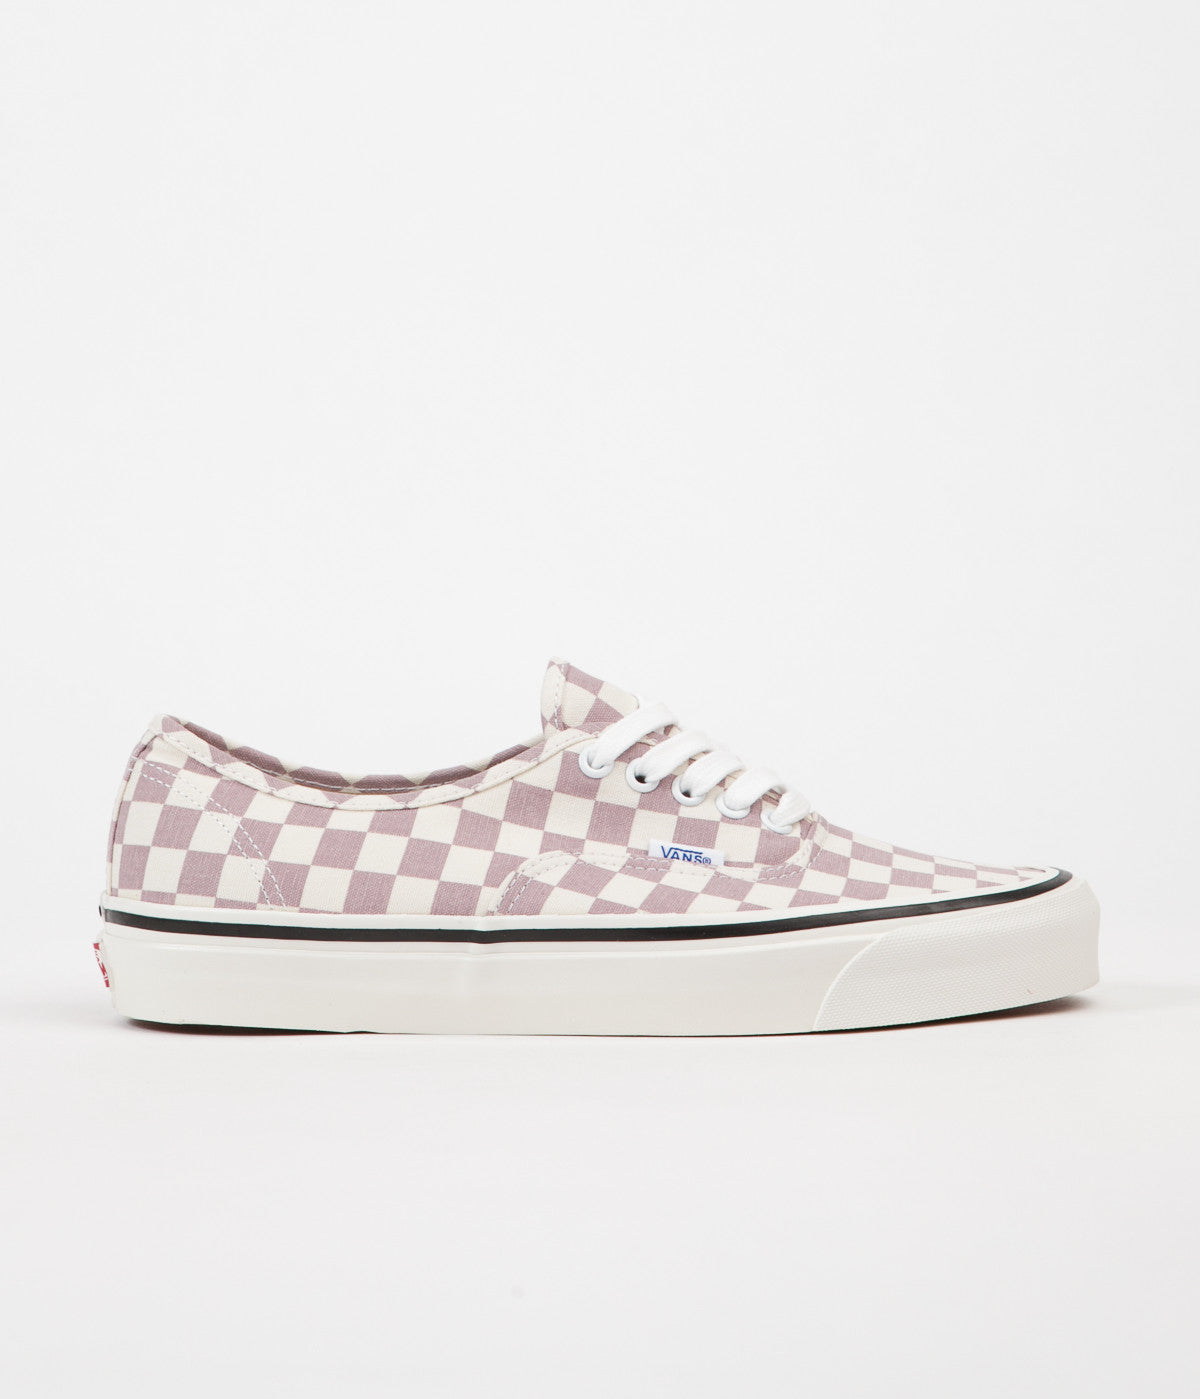 Vans Authentic 44 DX Anaheim Factory Shoes - OG Mauve Check  d959c9210